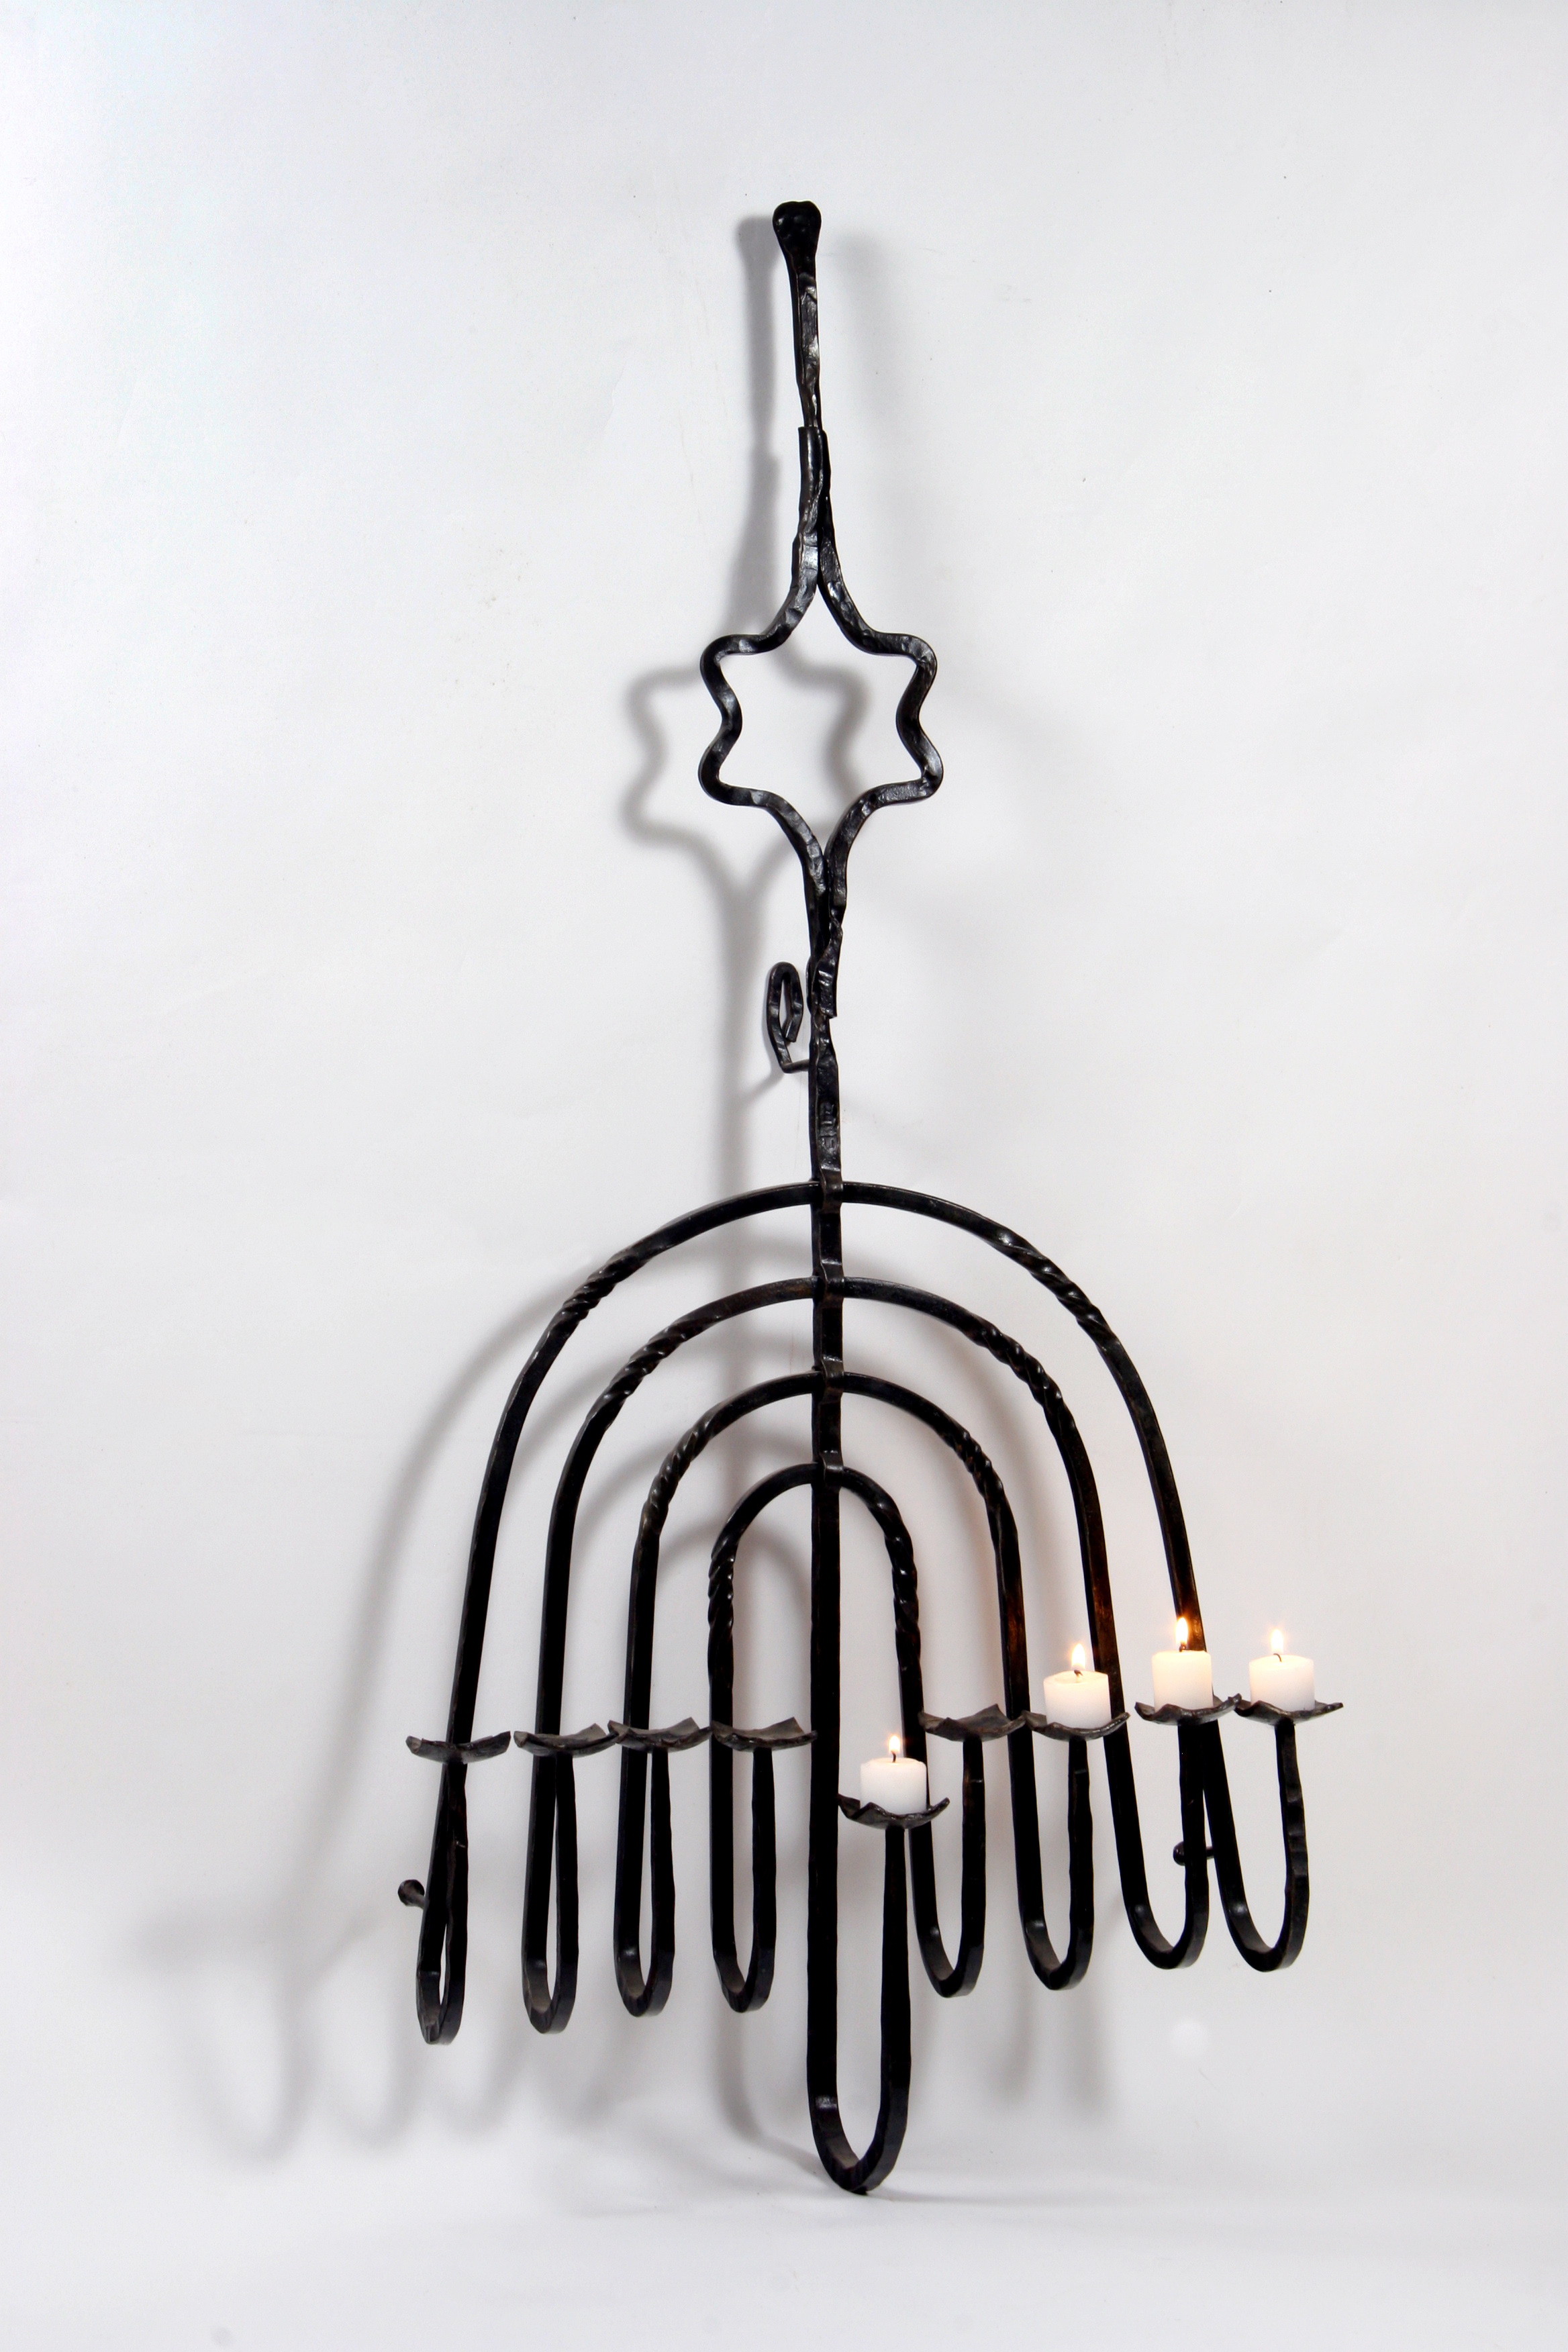 'Upside-down Hanukah menorah' - Hanging Hanucka Menorah of Forged Iron